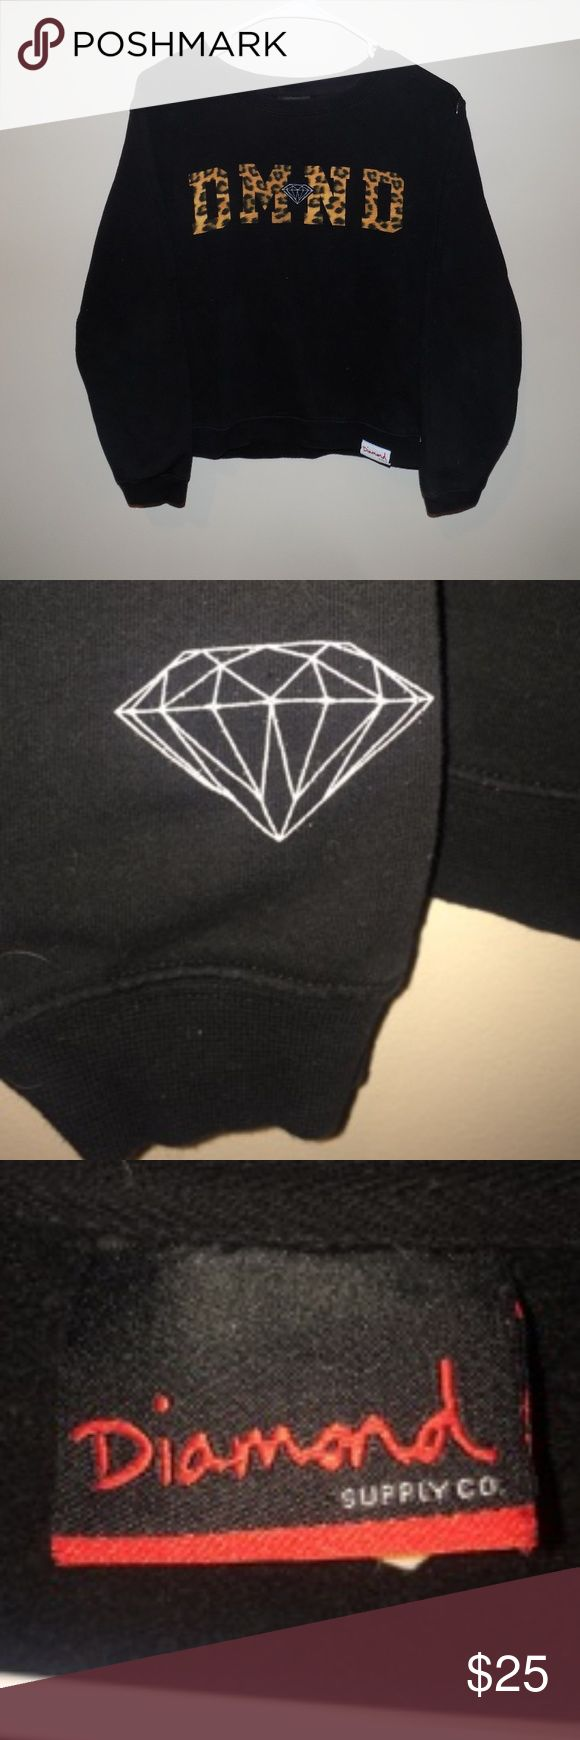 Women's Cheetah Print Diamond Supply Crewneck Women's Cheetah Print Diamond Supply Crewneck. Sweatshirt is still in really good condition with the only flaw being a small hole on the sleeve, other than that the sweatshirt still looks like it's in perfect condition! There is no cracking or fading on the lettering! Diamond Supply Co. Sweaters Crew & Scoop Necks